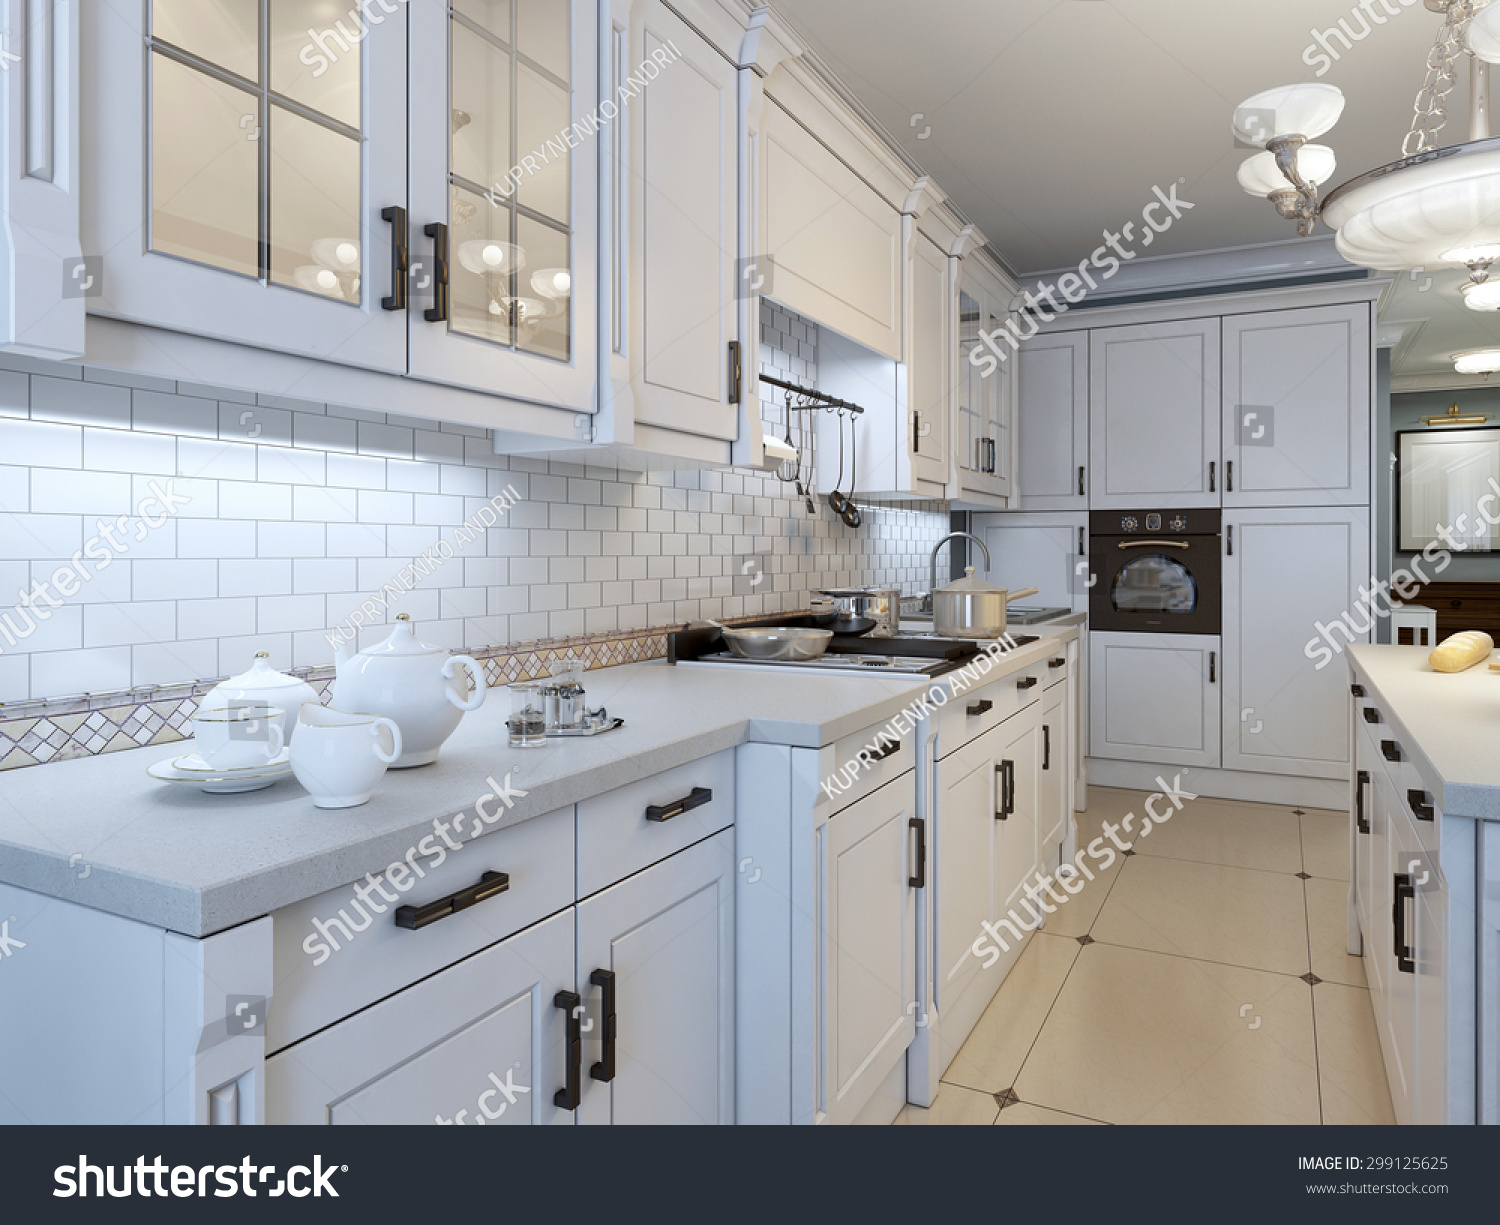 Art Deco Kitchen Kitchen Art Deco Trend 3d Render Stock Illustration 299125625